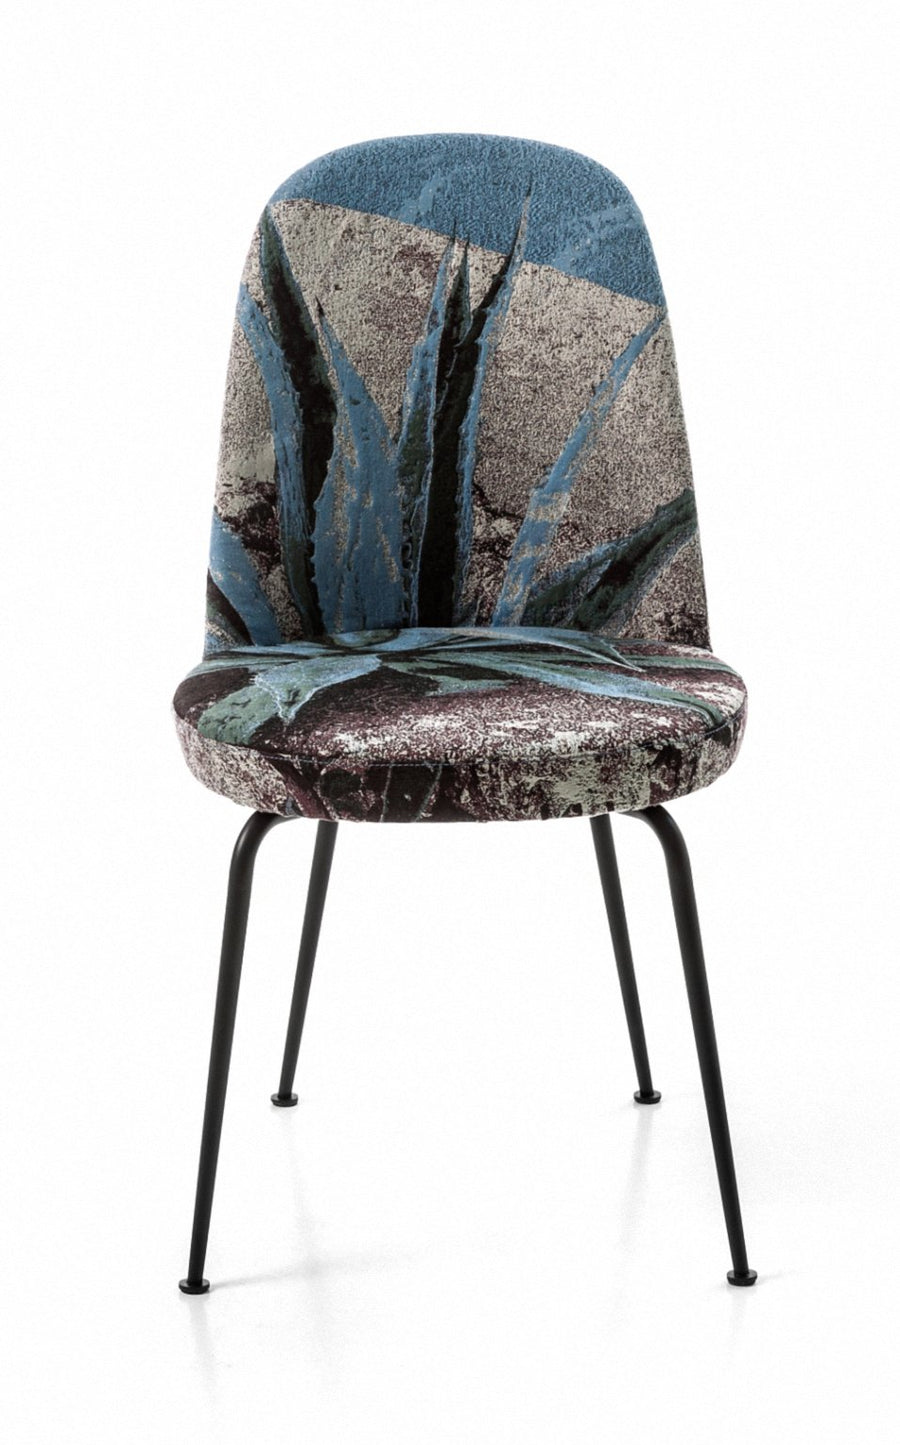 HUNGRY Upholstered Chair by Moroso for Diesel Living - DUPLEX DESIGN